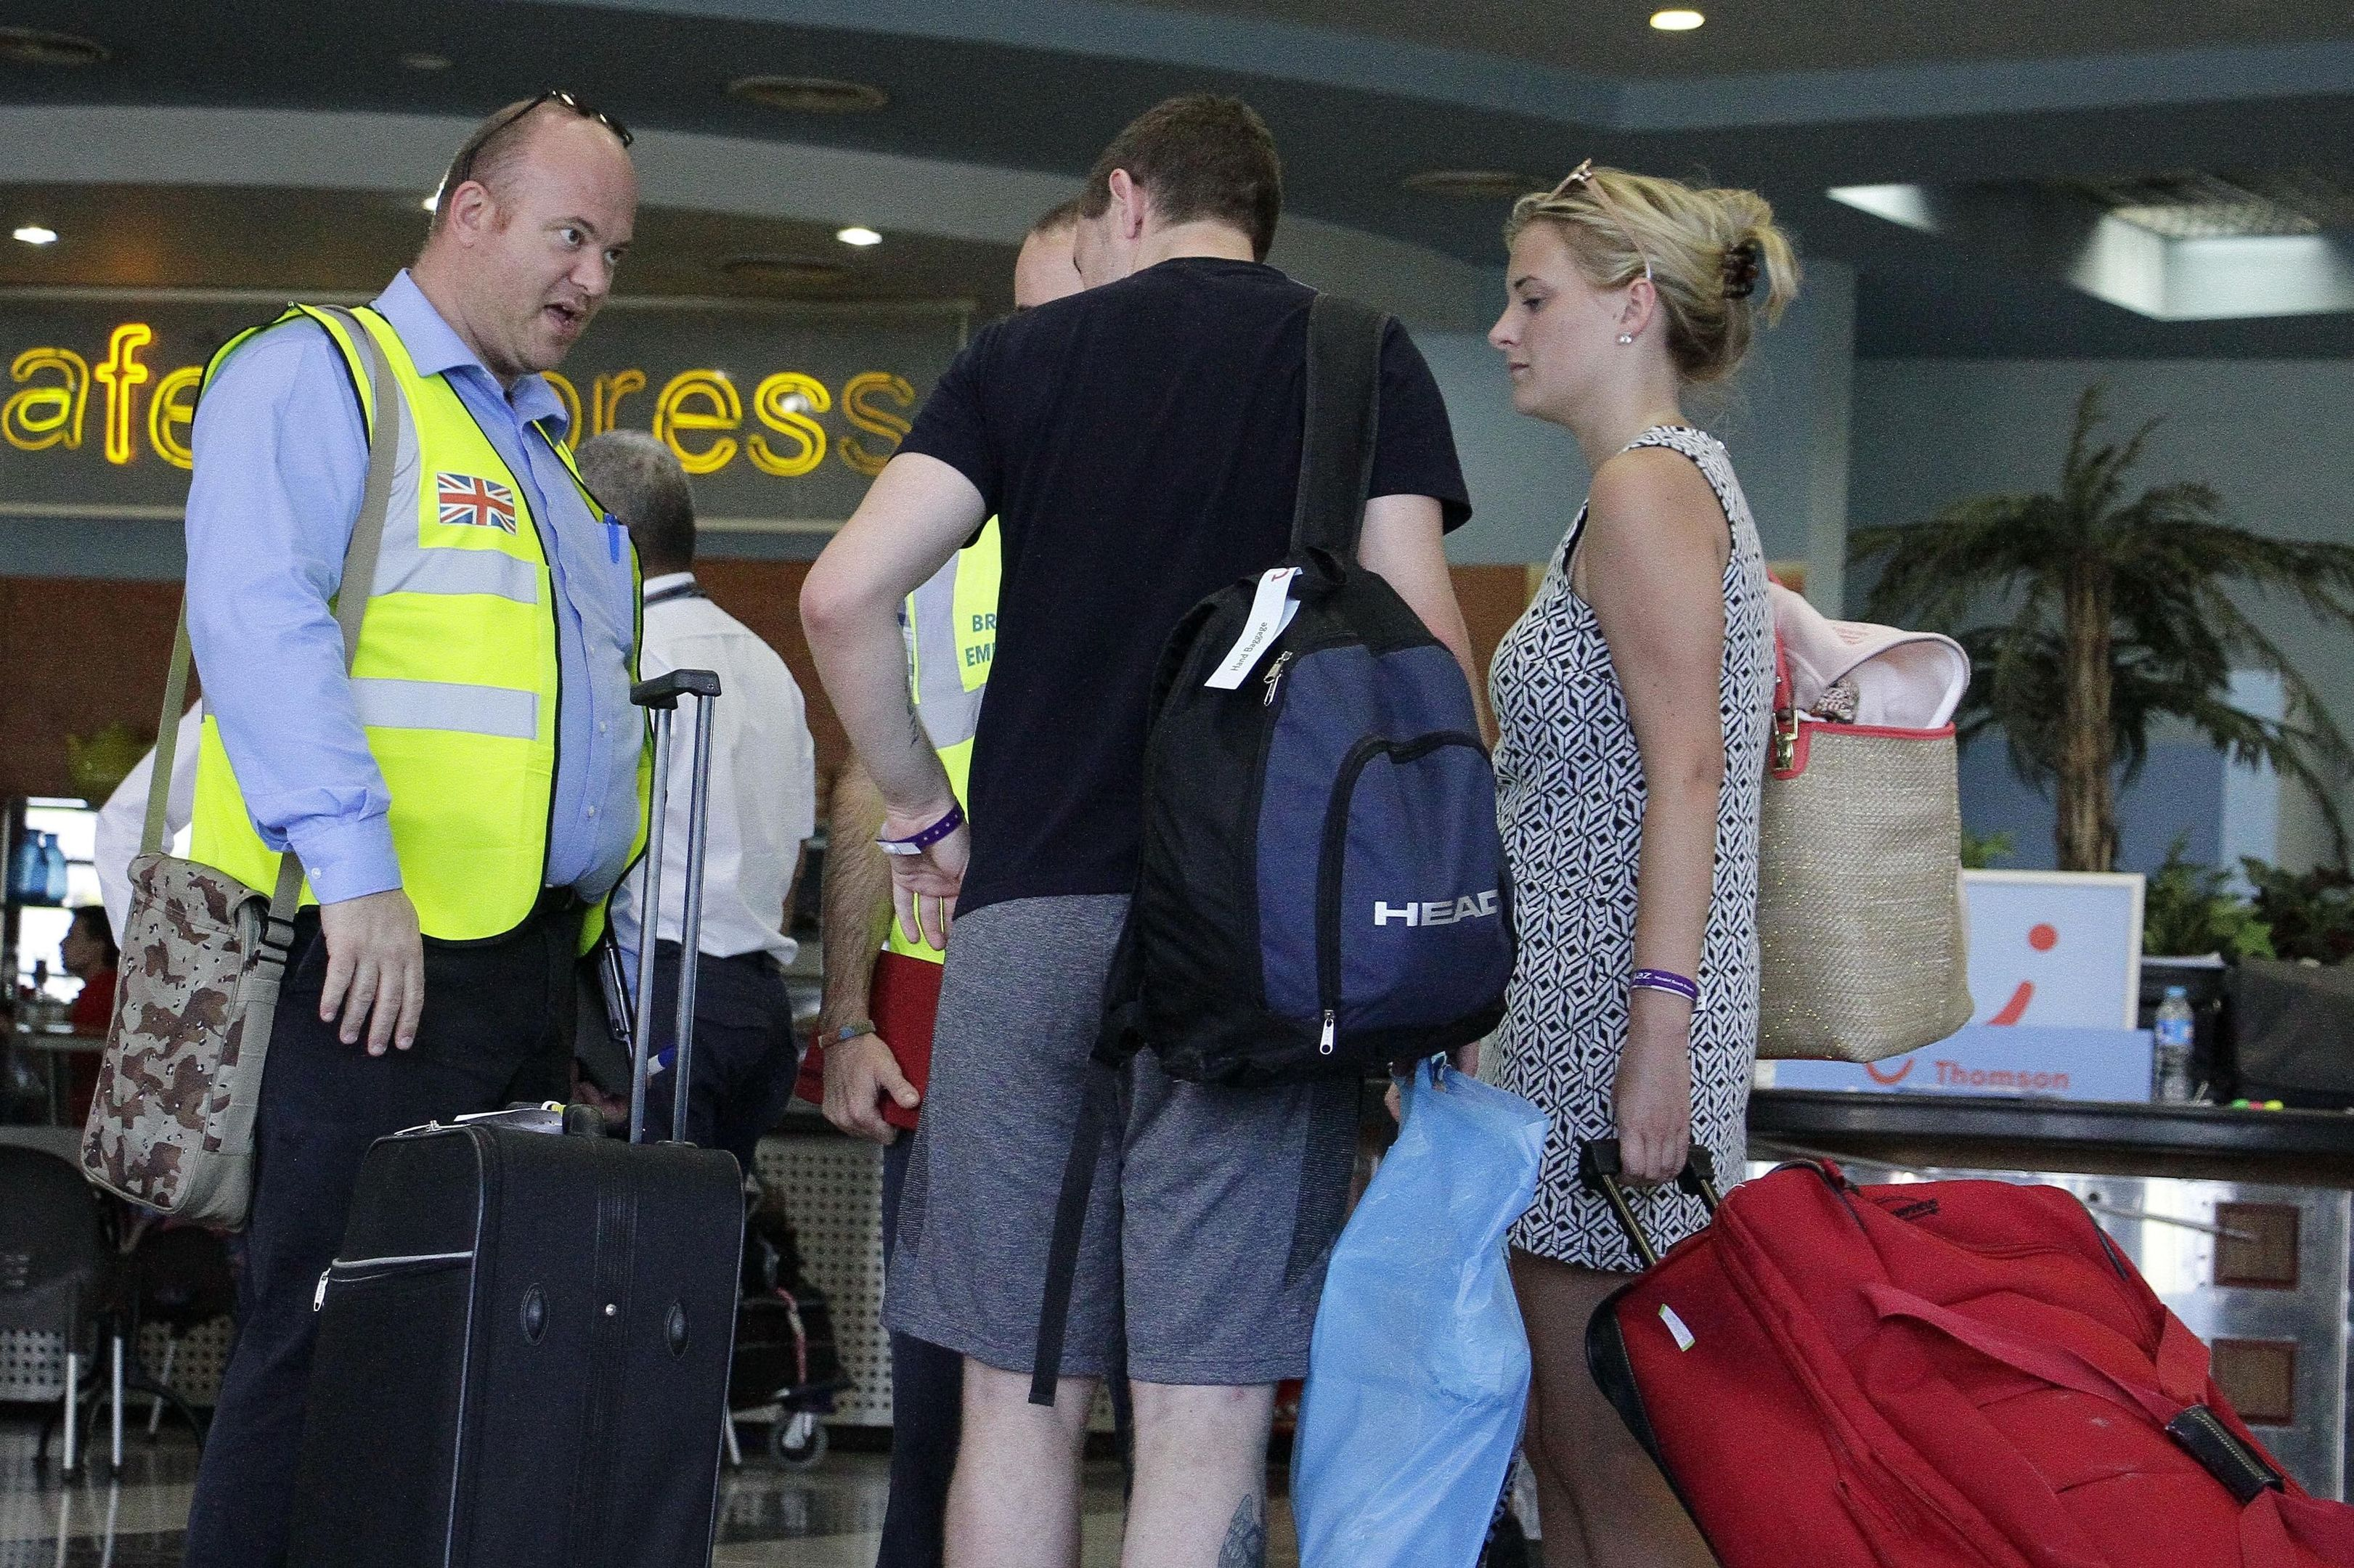 Representatives of the British government assist passengers preparing to depart from Sharm el-Sheikh Airport